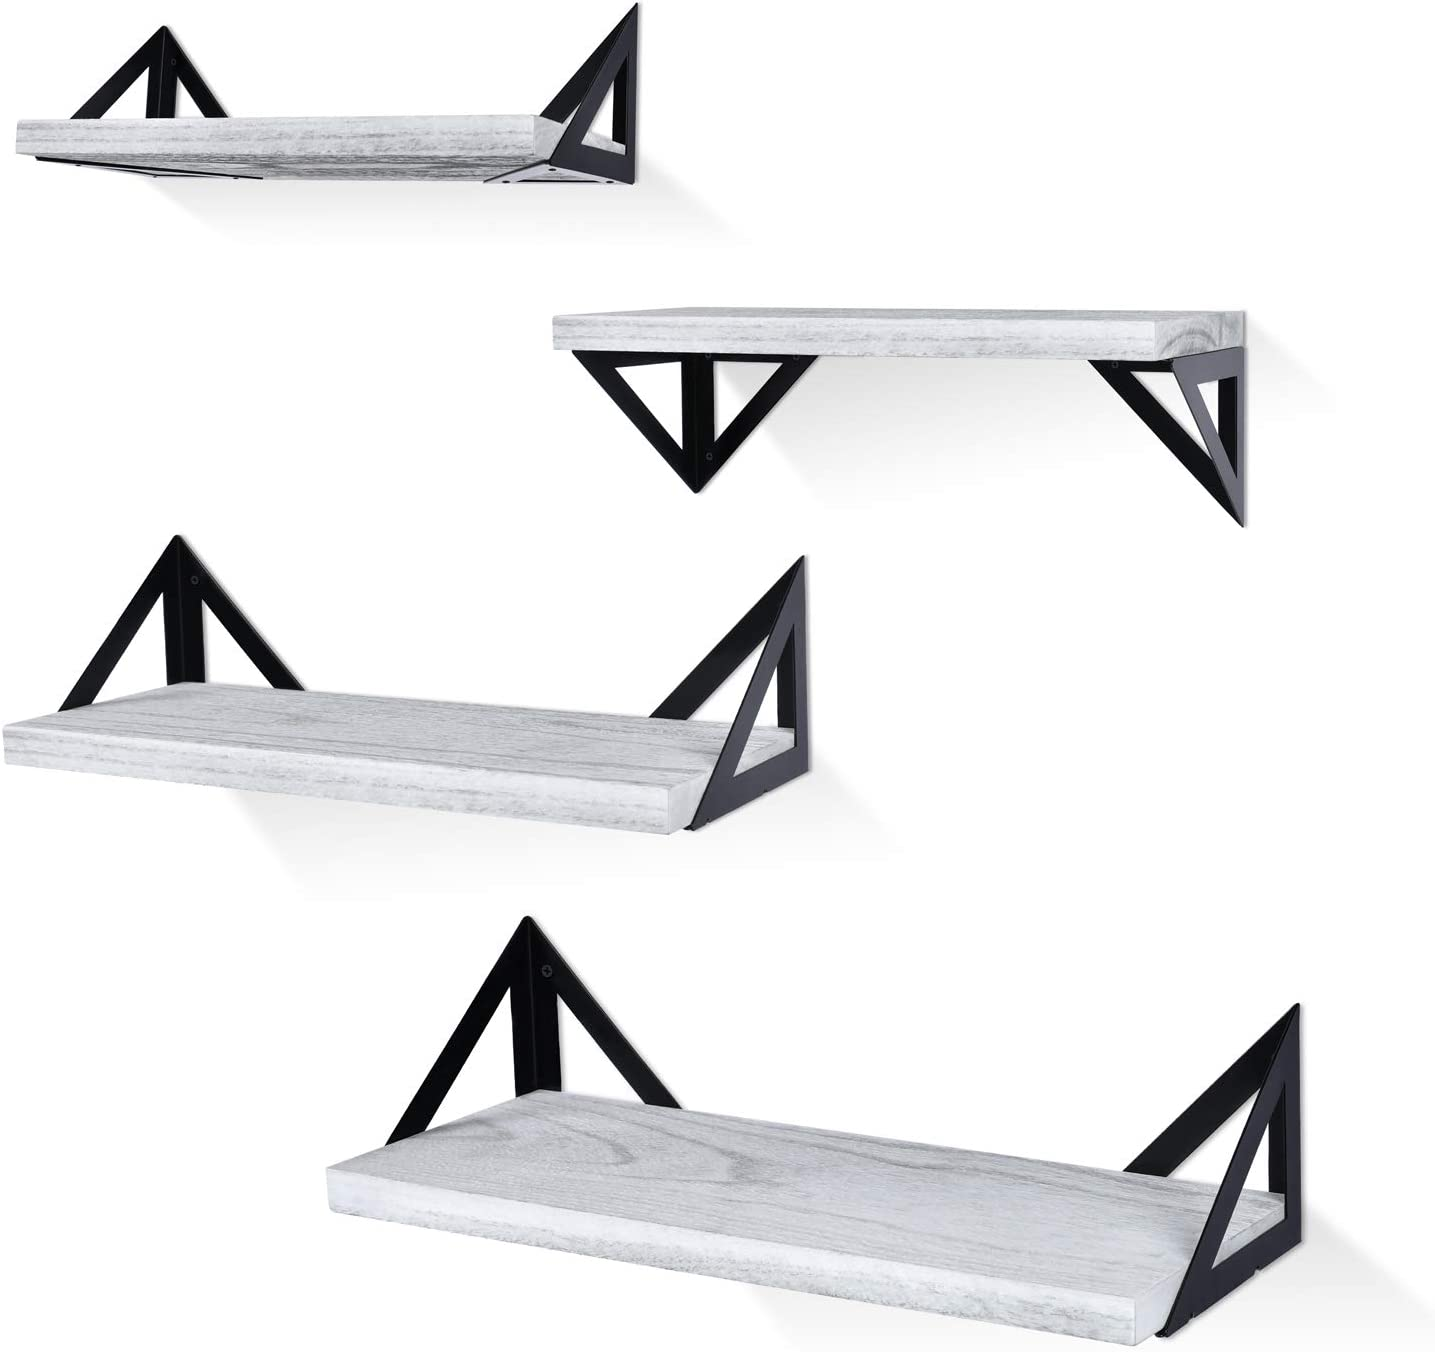 Superlatite Klvied Floating Shelves Wall Mounted Wood of Sales results No. 1 Set Rustic 4